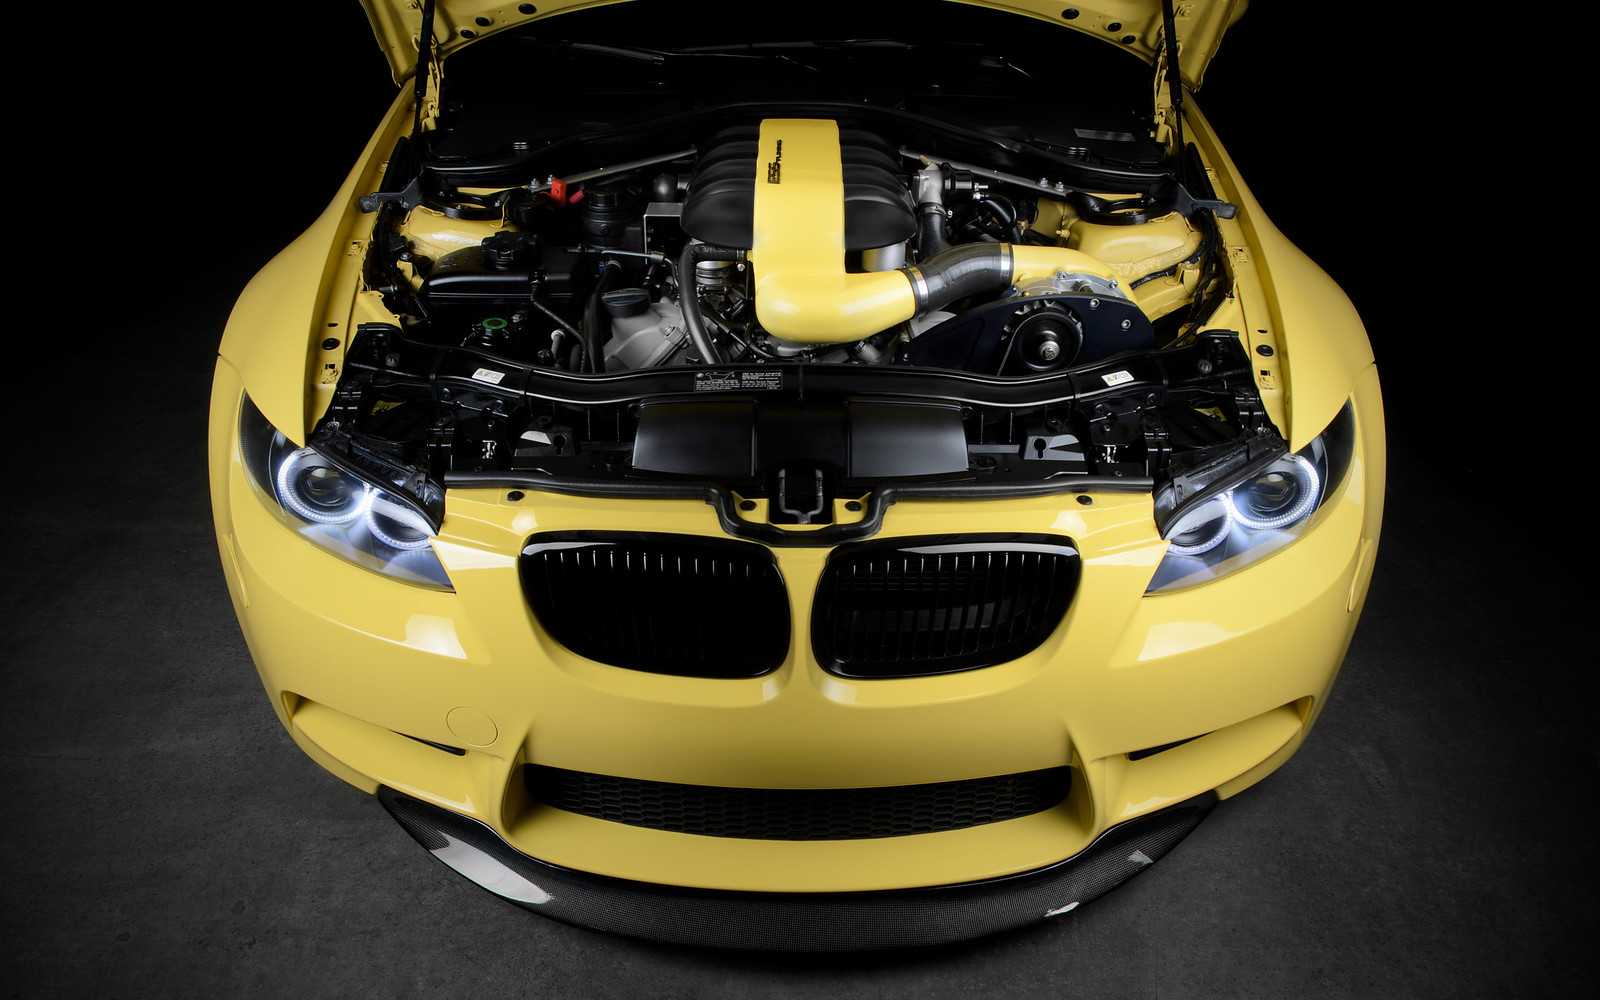 bmw m3 forum e90 e92 view single post black and yellow a nighttime photo shoot in. Black Bedroom Furniture Sets. Home Design Ideas